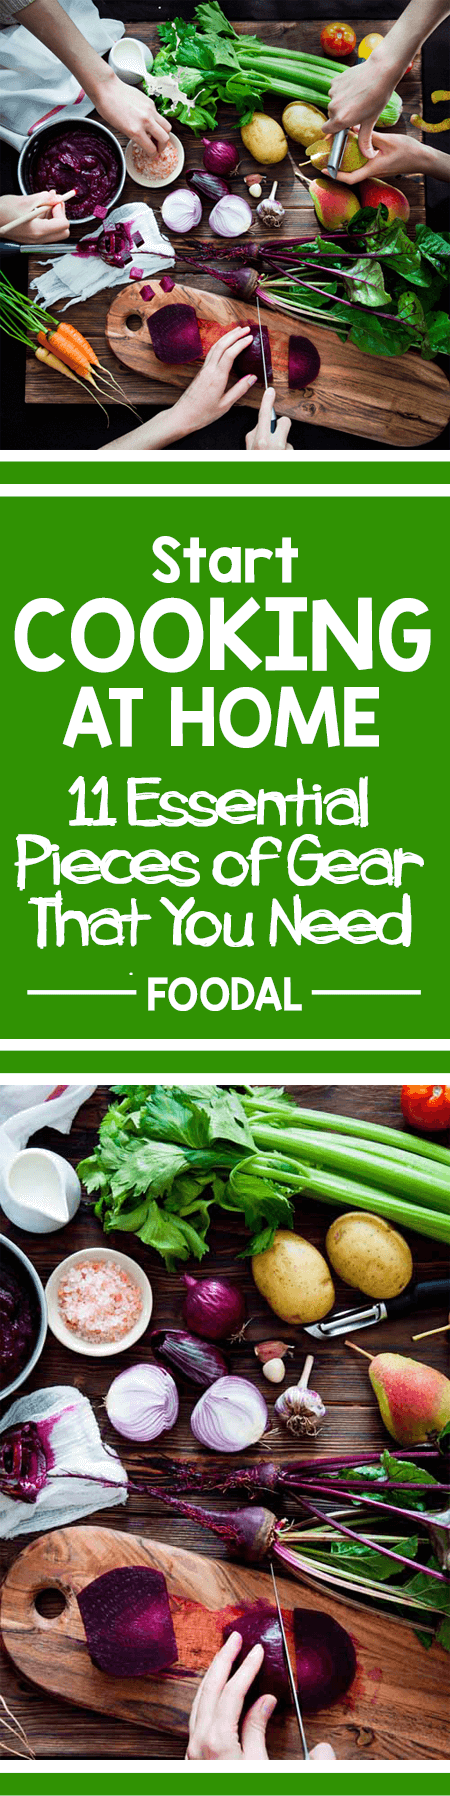 If you're looking to start cooking at home, here's a list of 11 essential pieces you'll need to get started – ones that'll make cooking easier and more fun! Buying a set of utensils and equipment to start with will help you to enjoy more success in the kitchen, and they don't have to be expensive. Later, as you gain experience (and as your budget allows), you can build on your starter set to suit your needs. https://foodal.com/kitchen/general-kitchenware/guides-general-kitchenware/essential-gear/